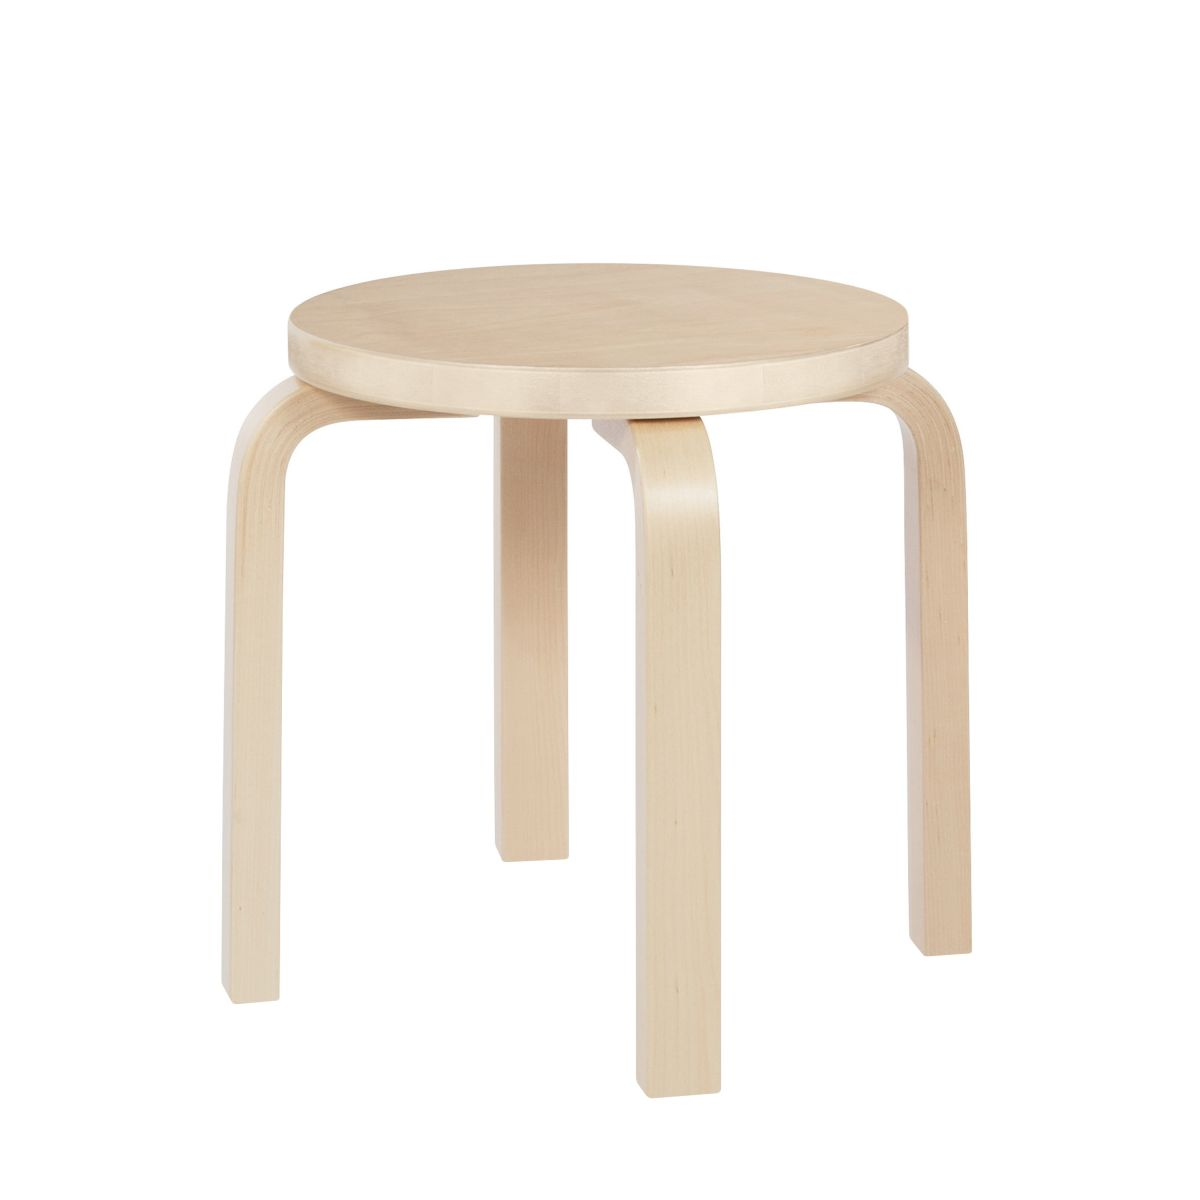 Children's Stool NE60 natural lacquered birch